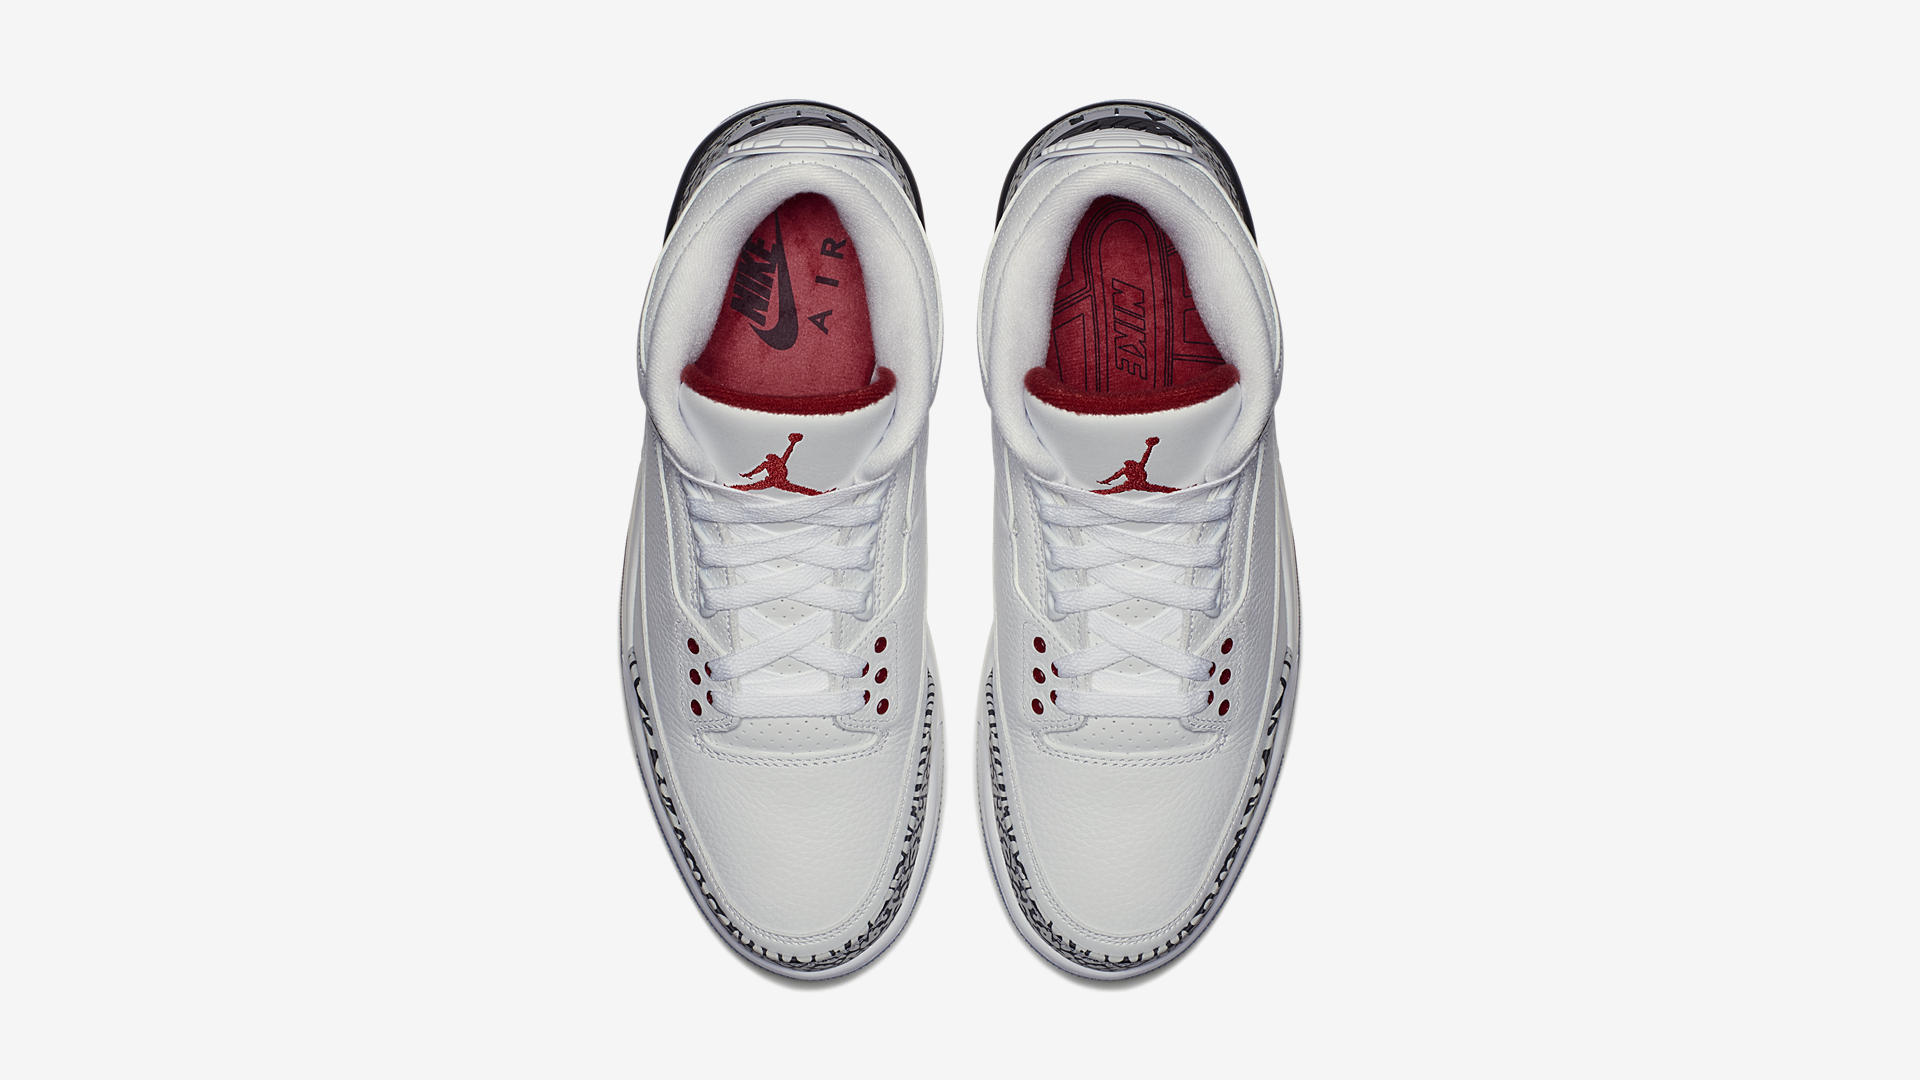 923096 101 Air Jordan 3 Free Throw Line 3